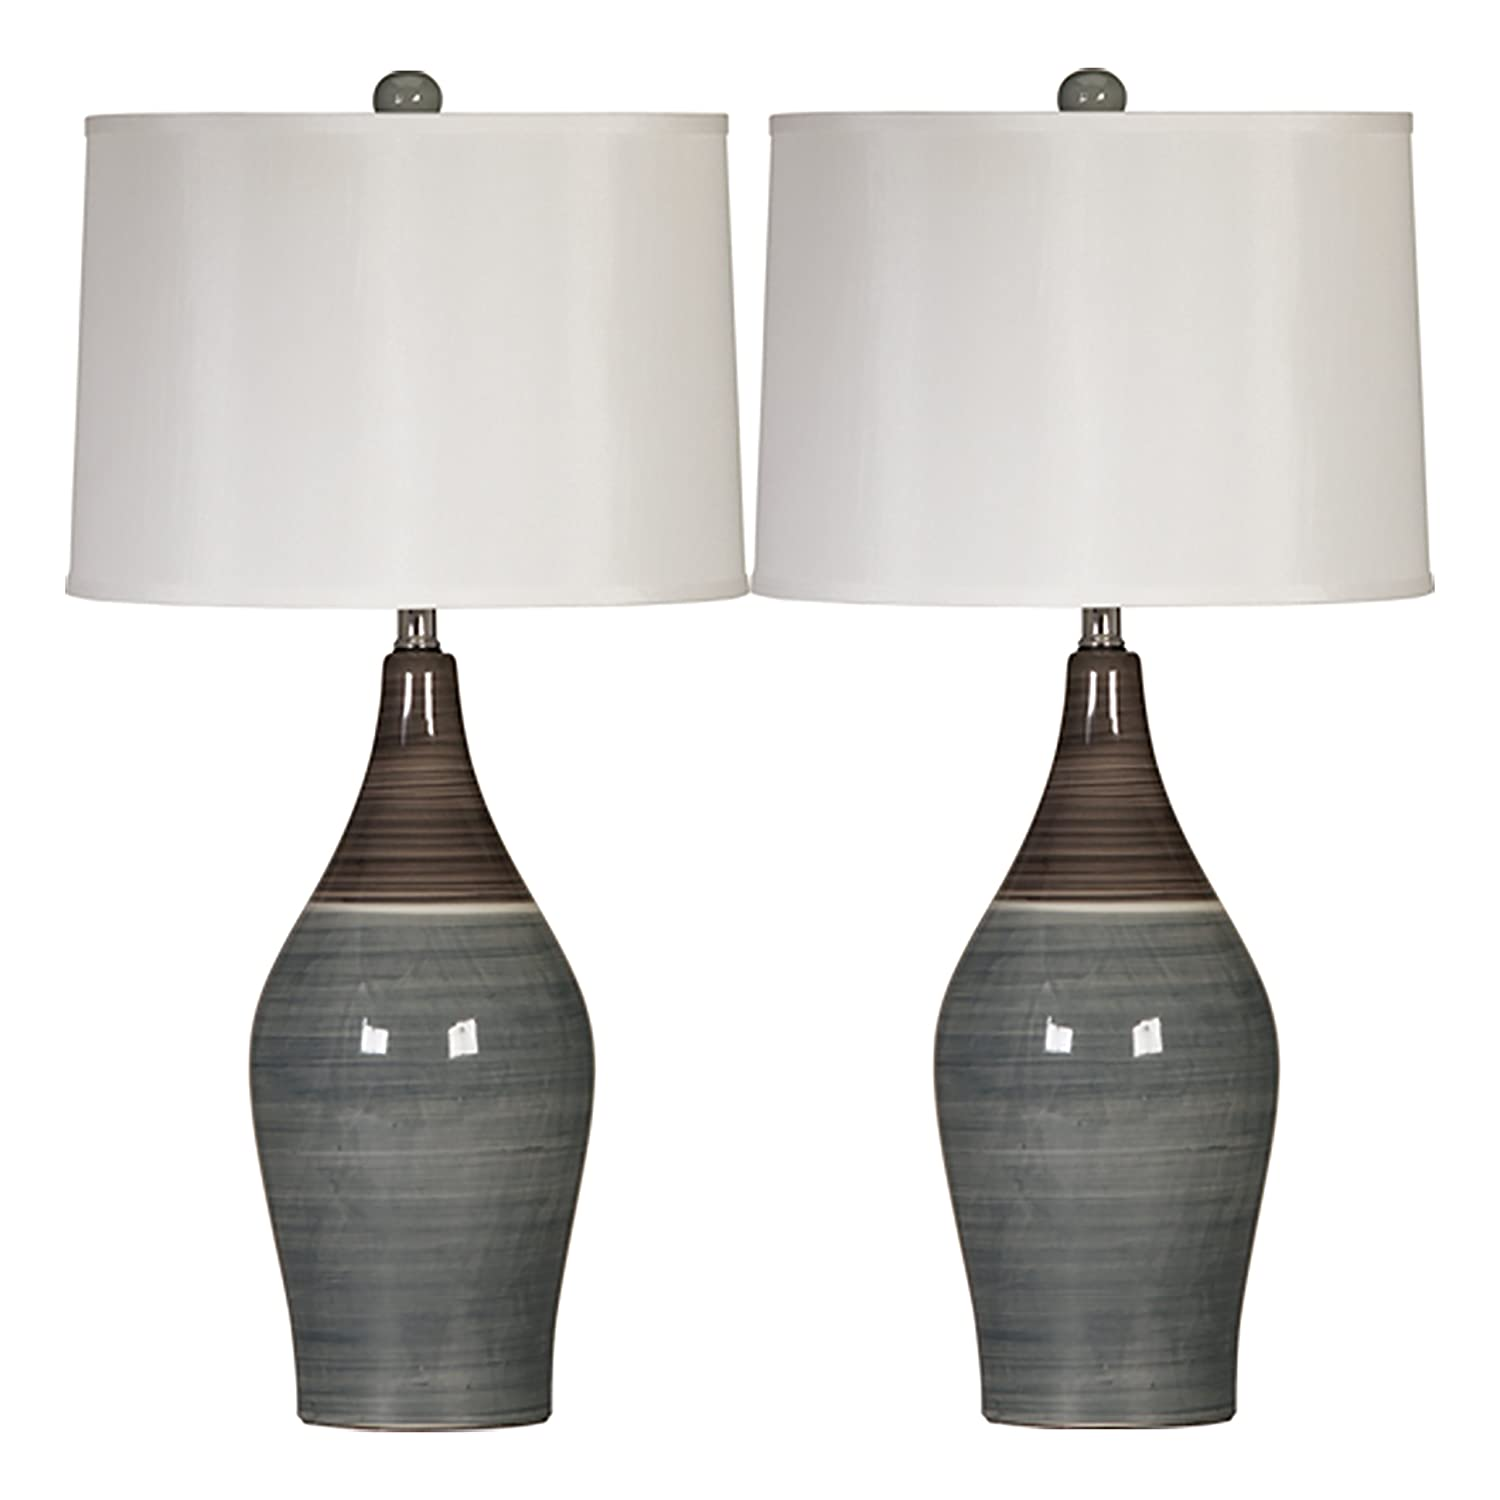 Ashley Furniture Signature Design - Niobe Ceramic Table Lamp - Set of 2 - Multicolored/Gray L123884